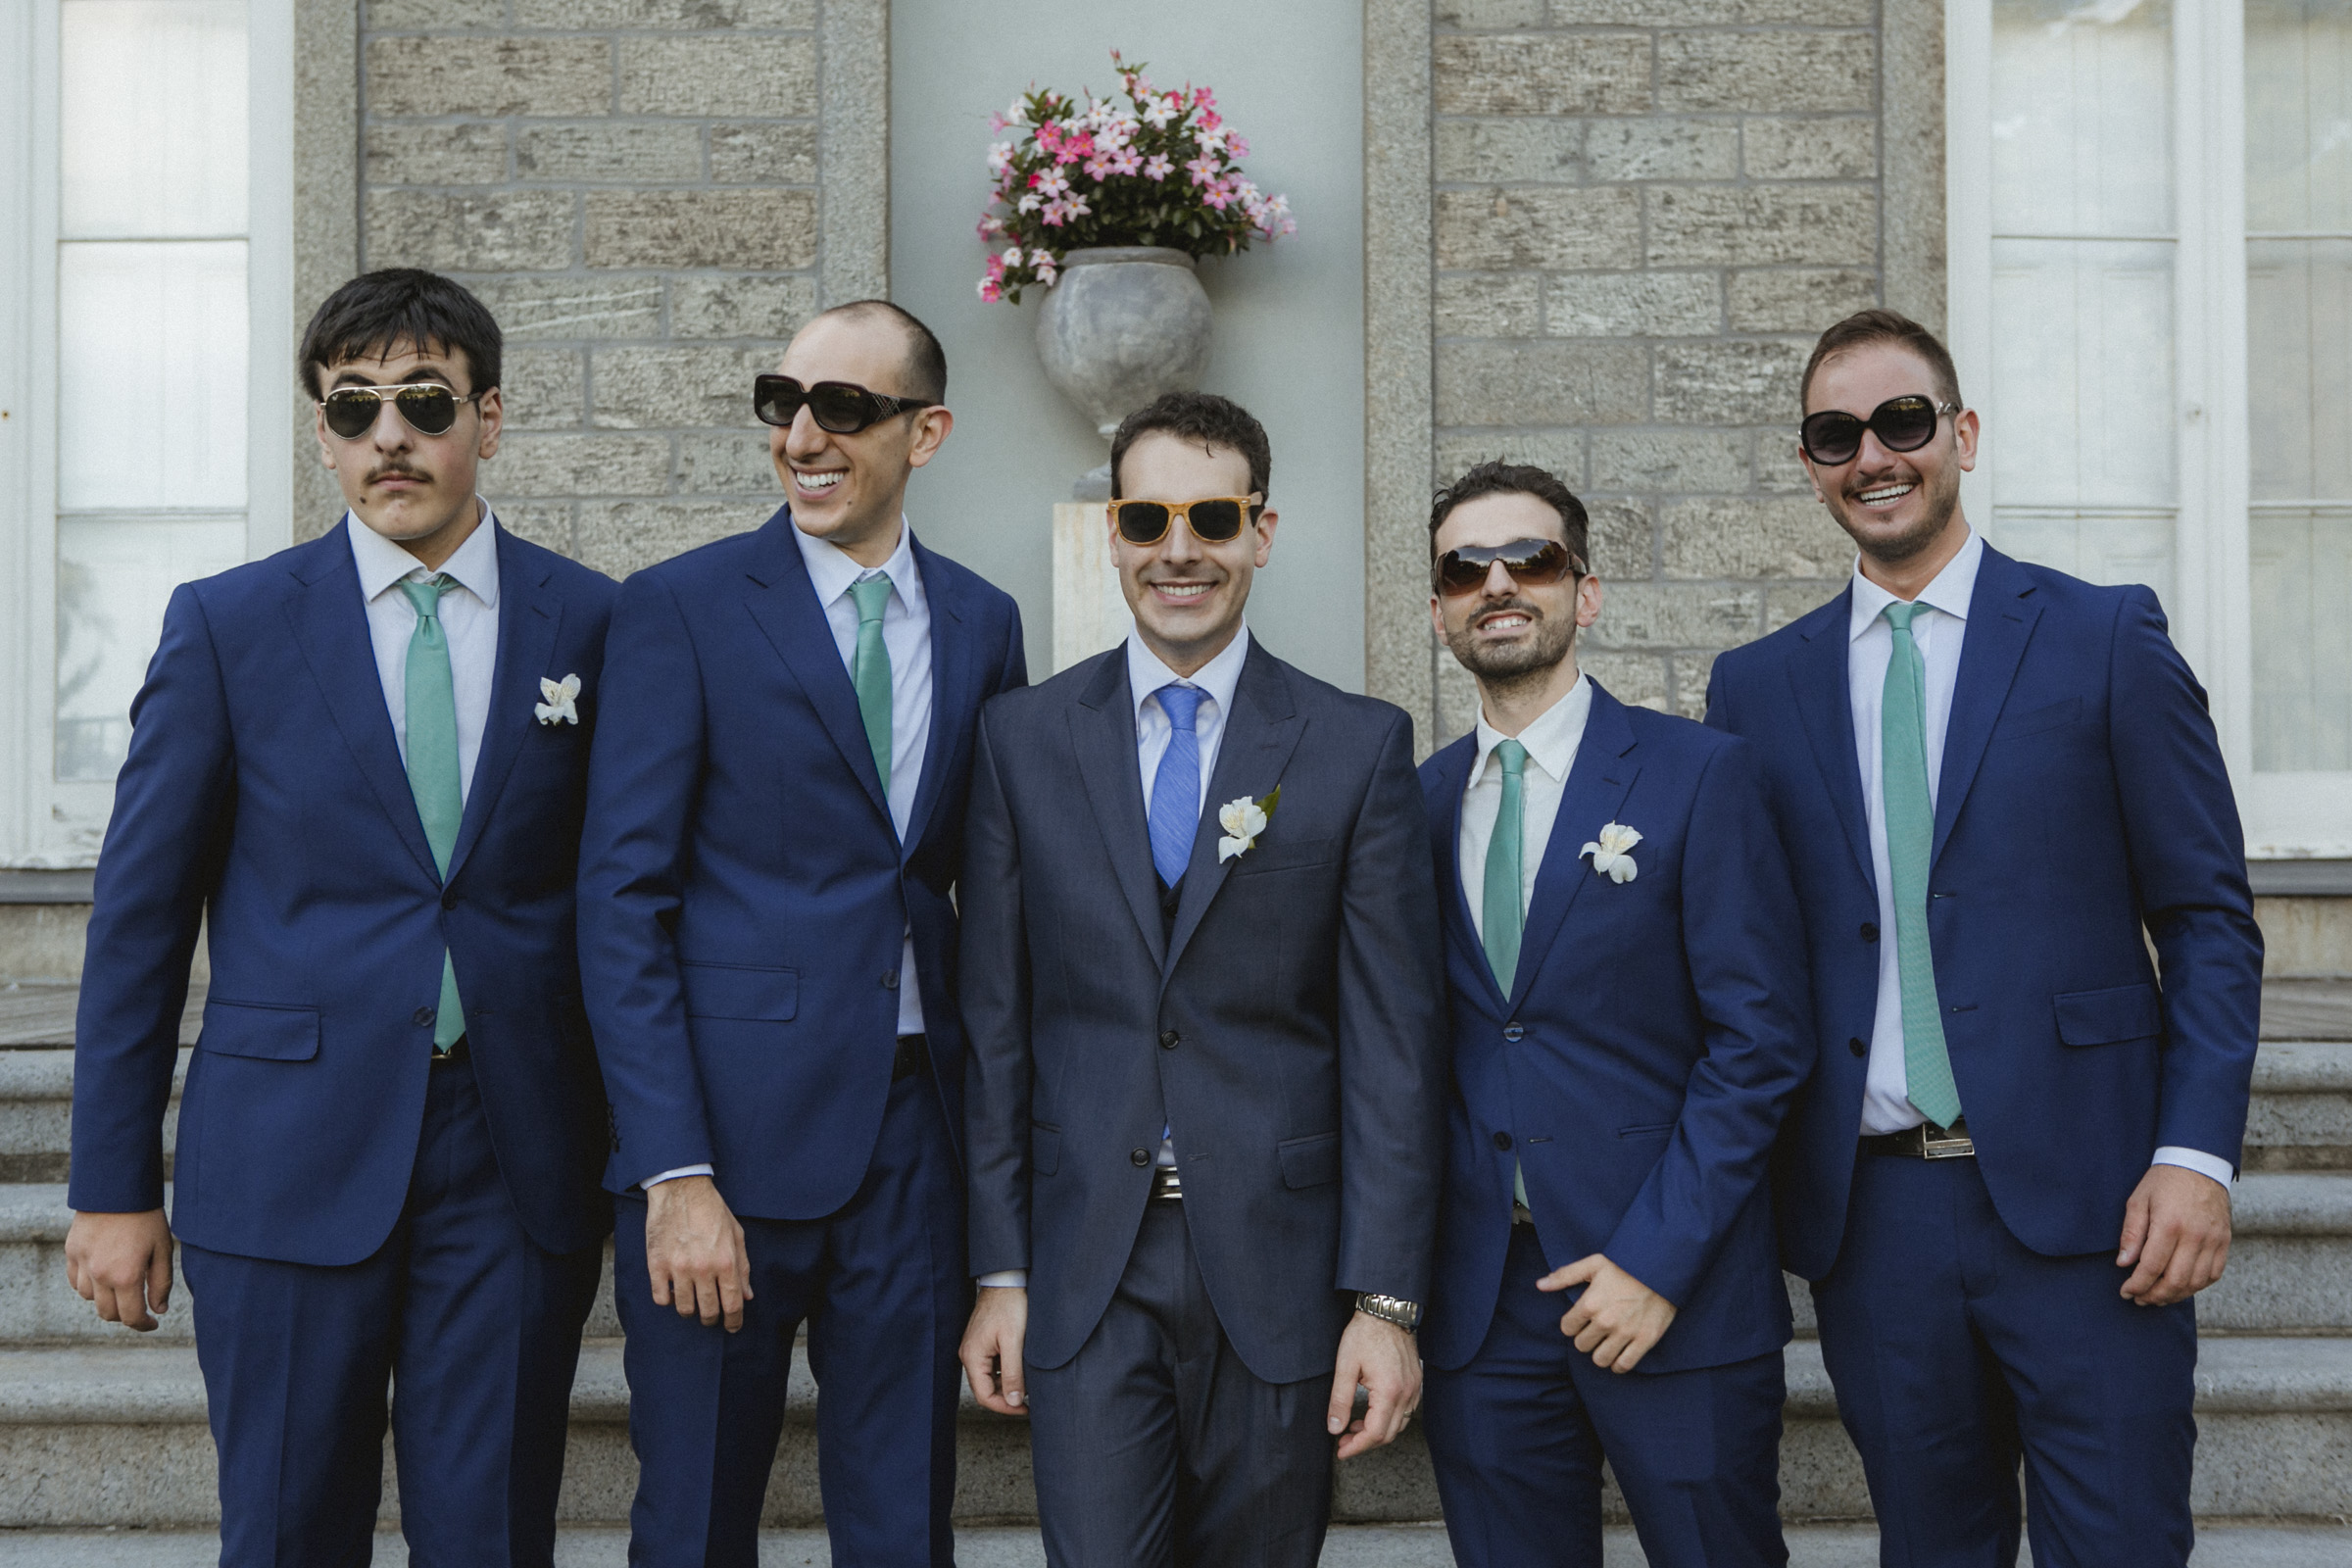 Stylish groomsmen sporting sunglasses, smiles and Sean John suits | Bartow-Pell Mansion wedding | Manhattan wedding | Bronx Wedding | Cathy & Antonello's wedding | Amy Sims Photography